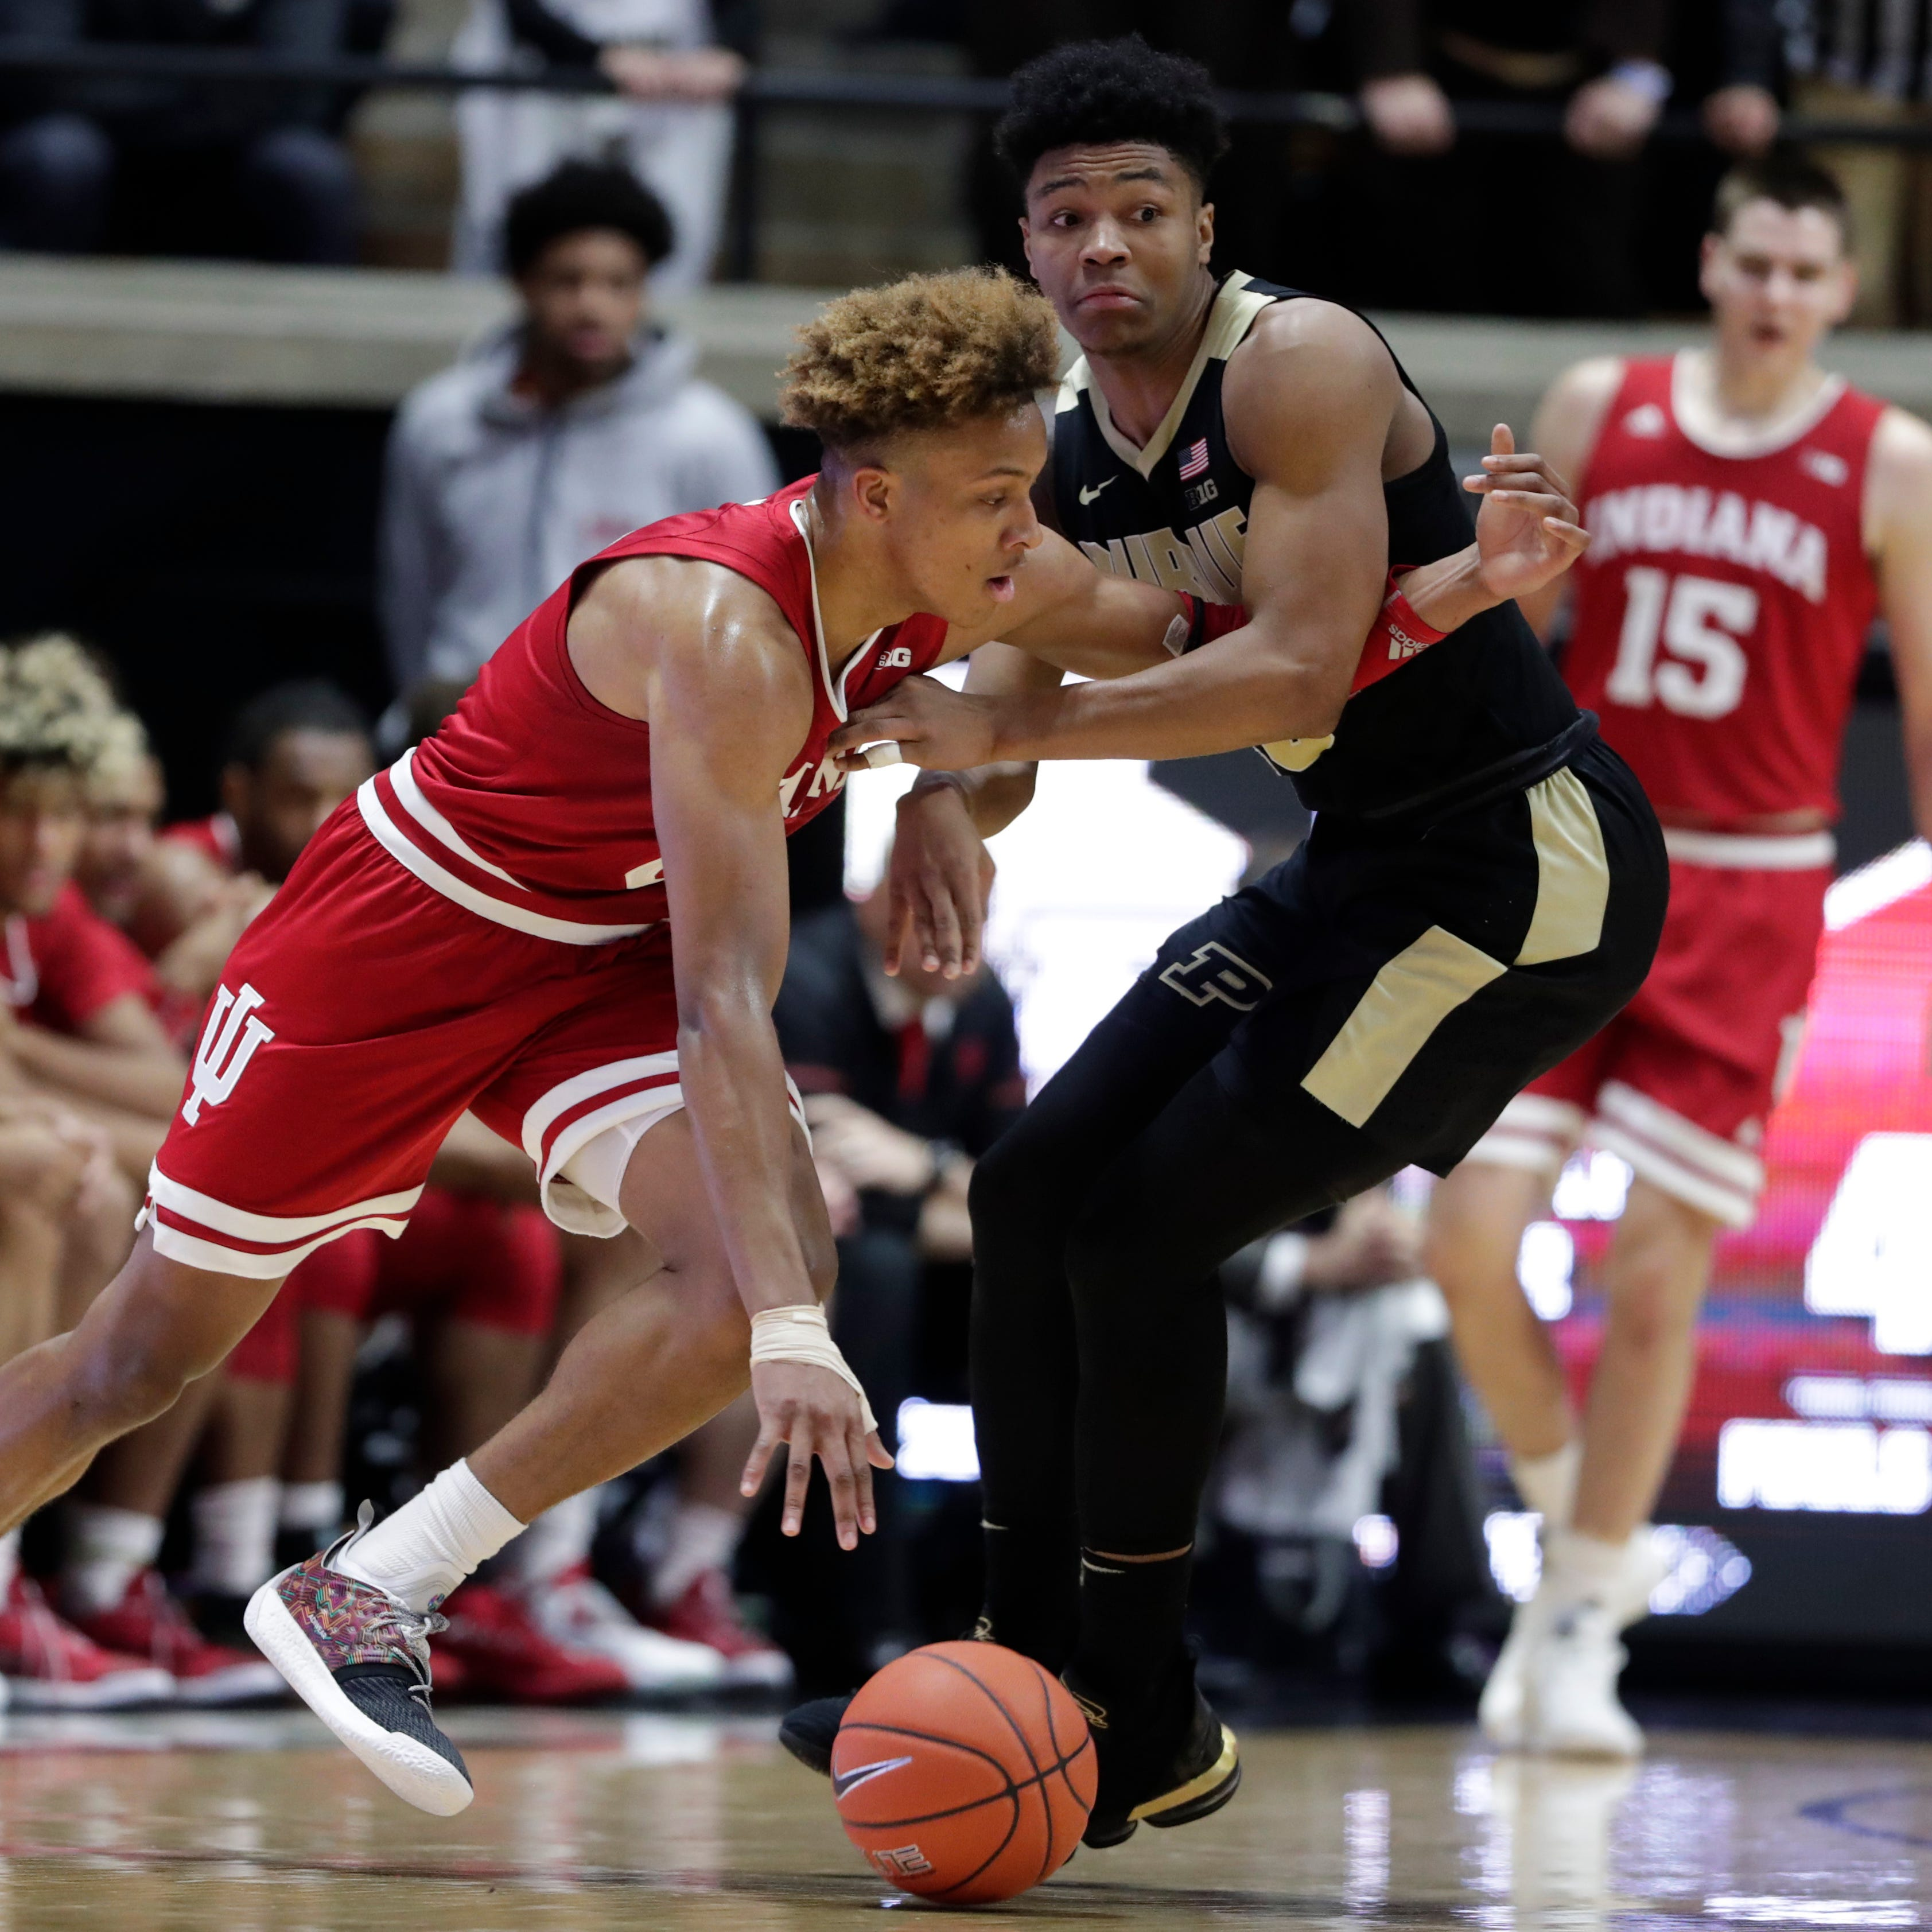 Scouting No. 15 Purdue men's basketball at Indiana